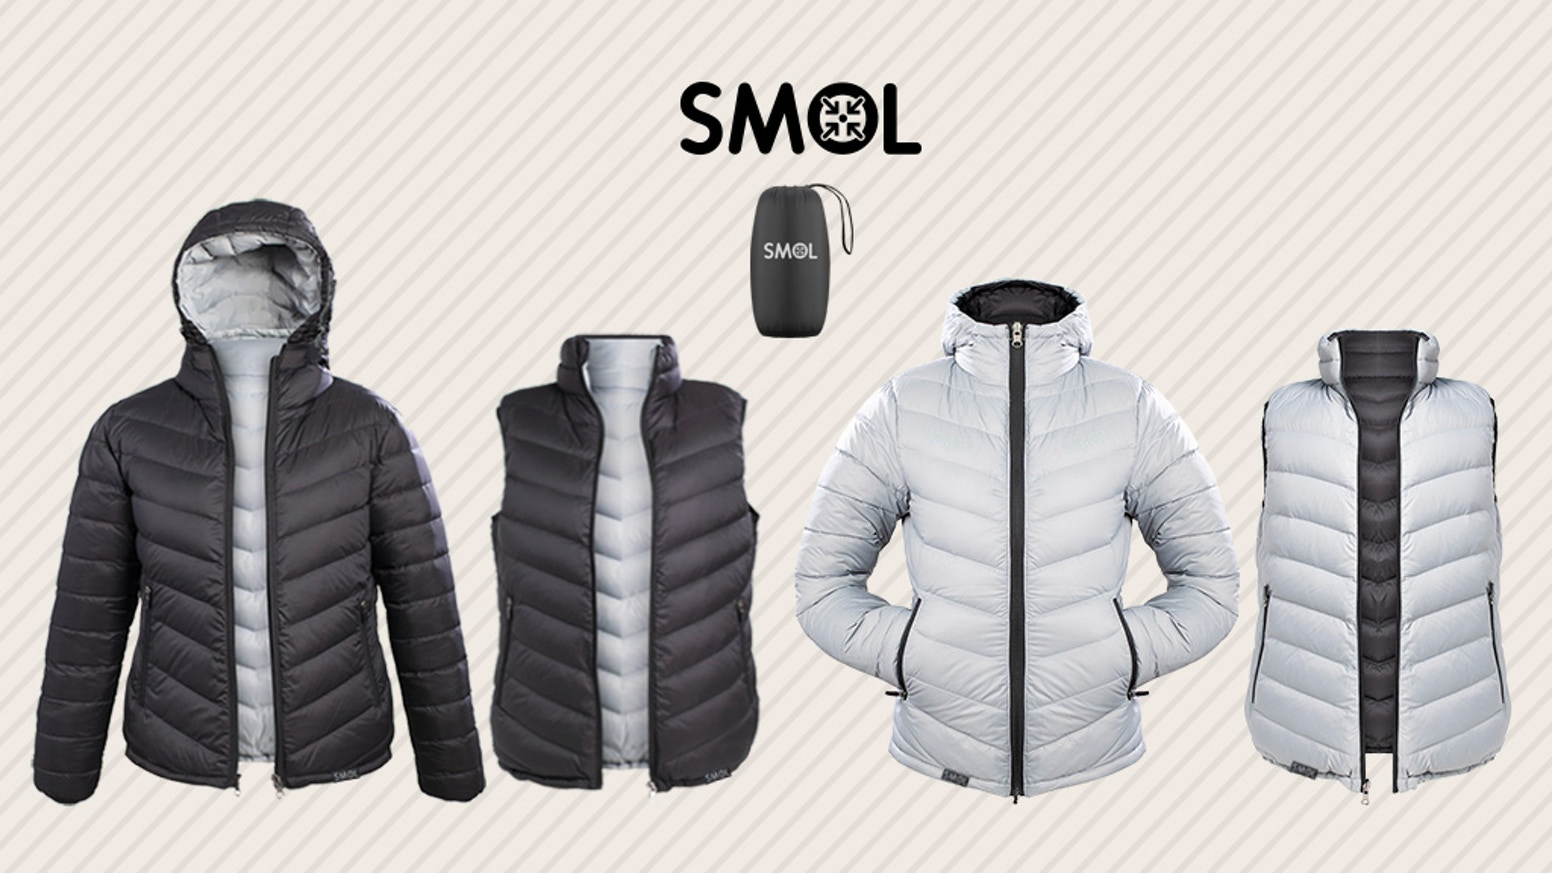 Super Warm | Jacket+Vest | All Weather | Reversible | Connectable | Packable | Lightweight | Wind Proof | Washable | Animal Free